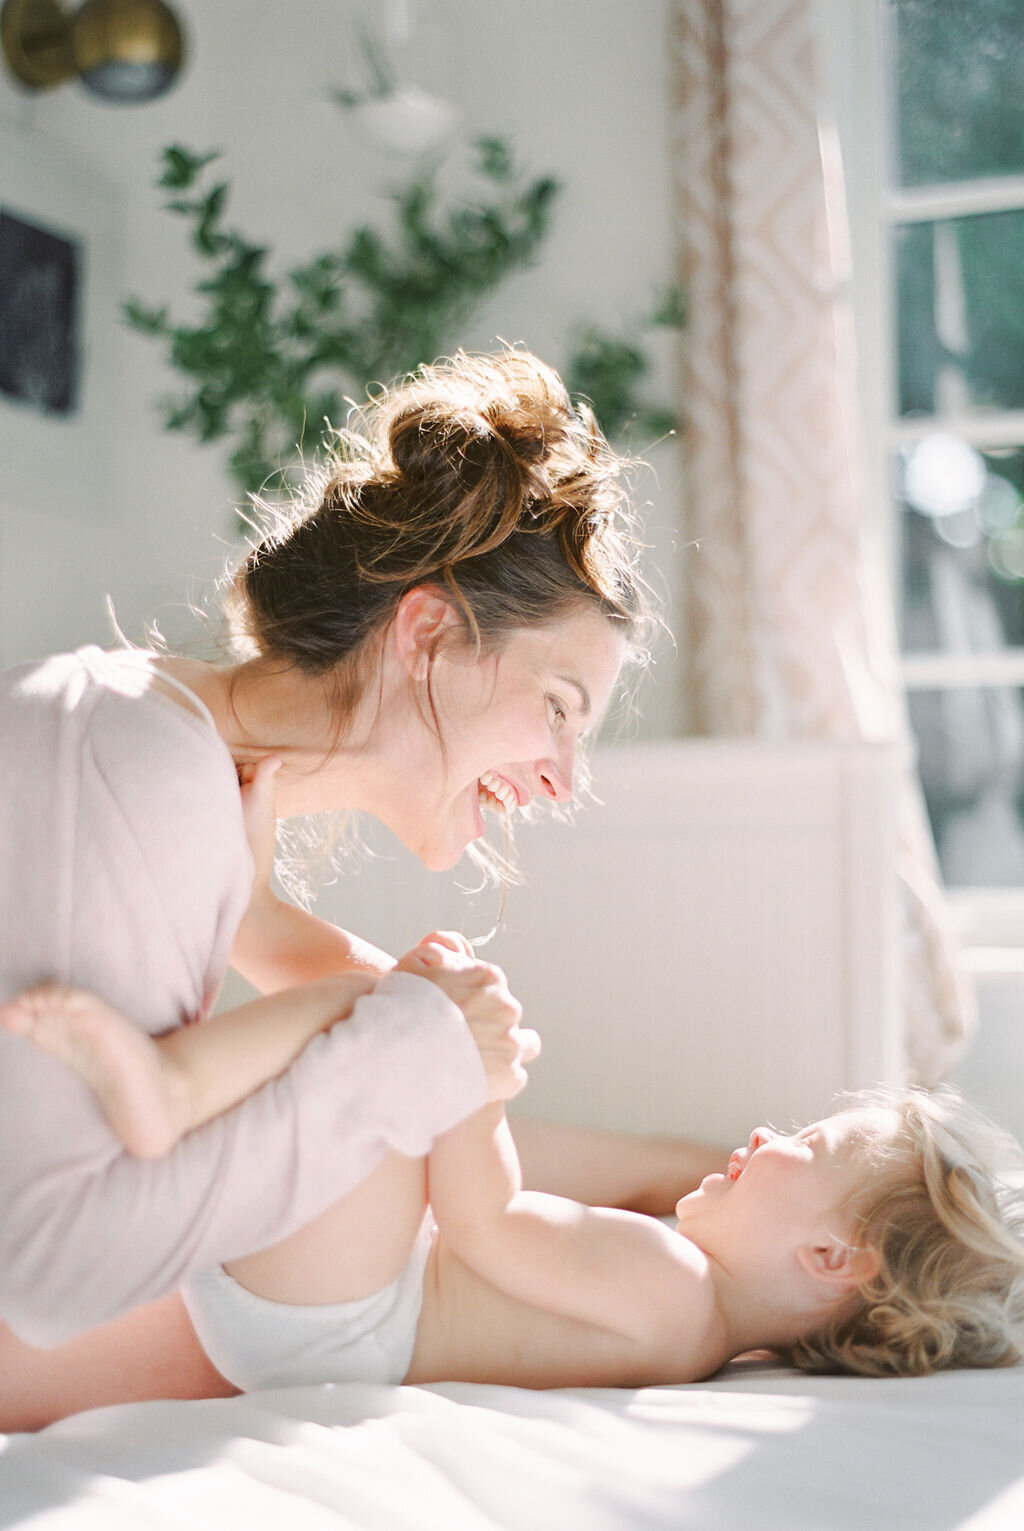 lexia-motherhood-session-portland-oregon-melanie-gabrielle-photography-22